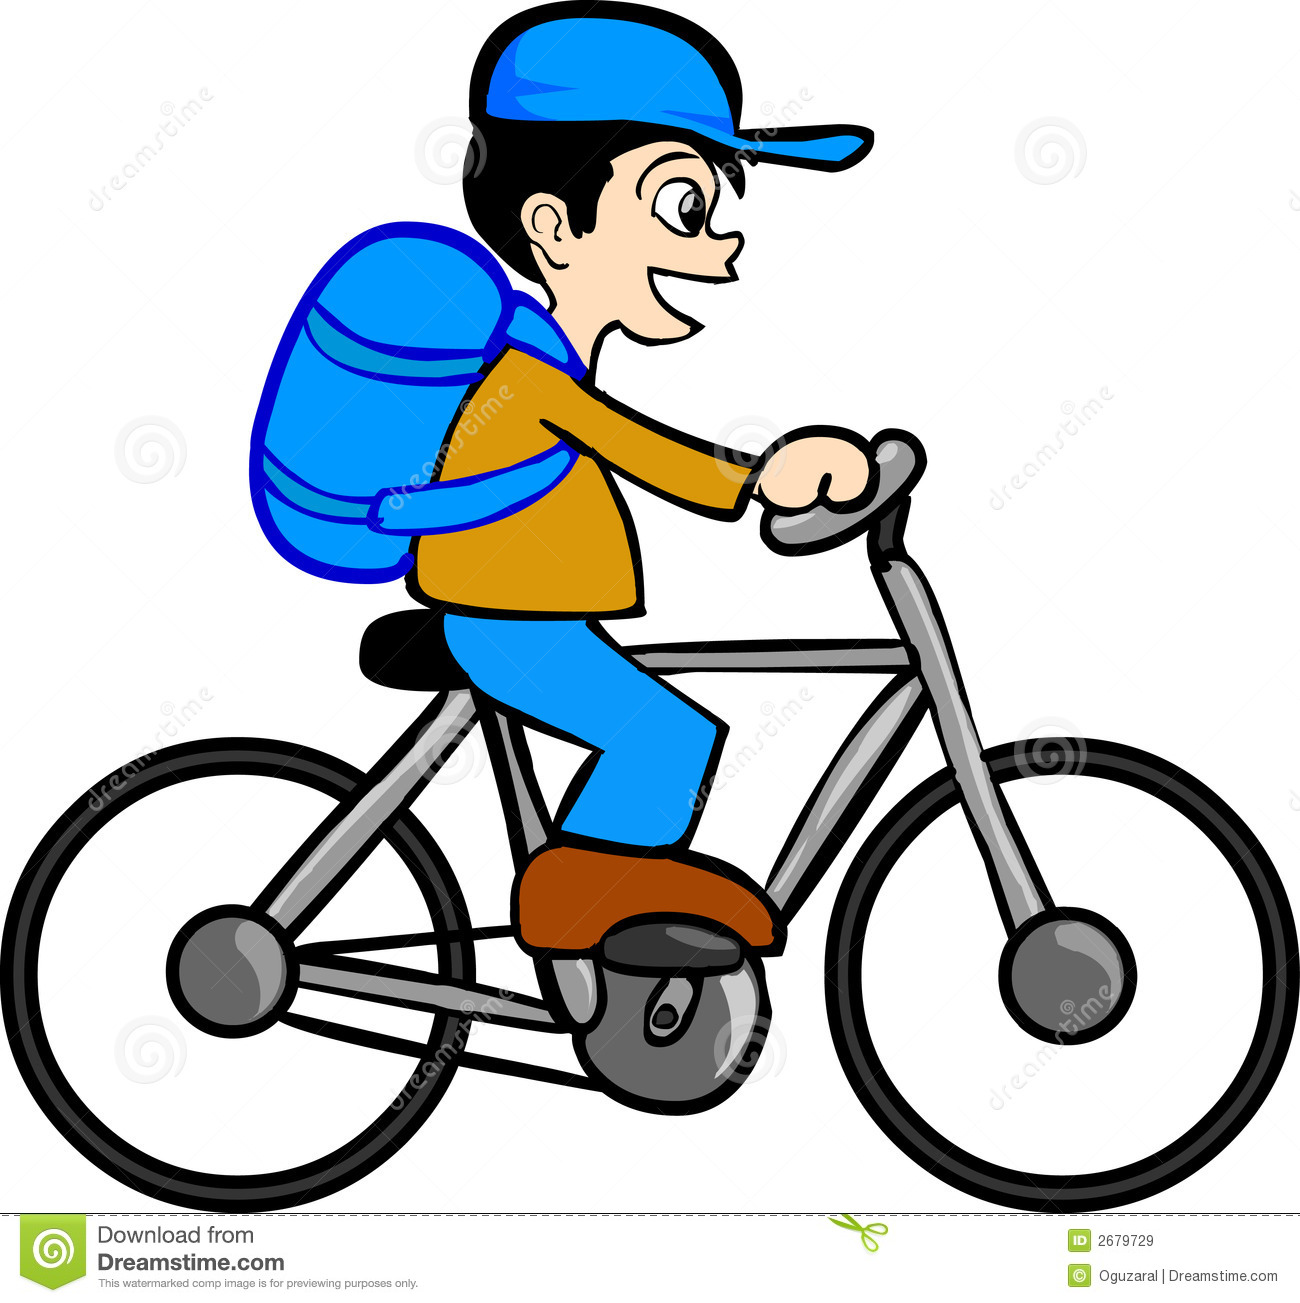 Funny Cycling Clipart - Clipart Kid